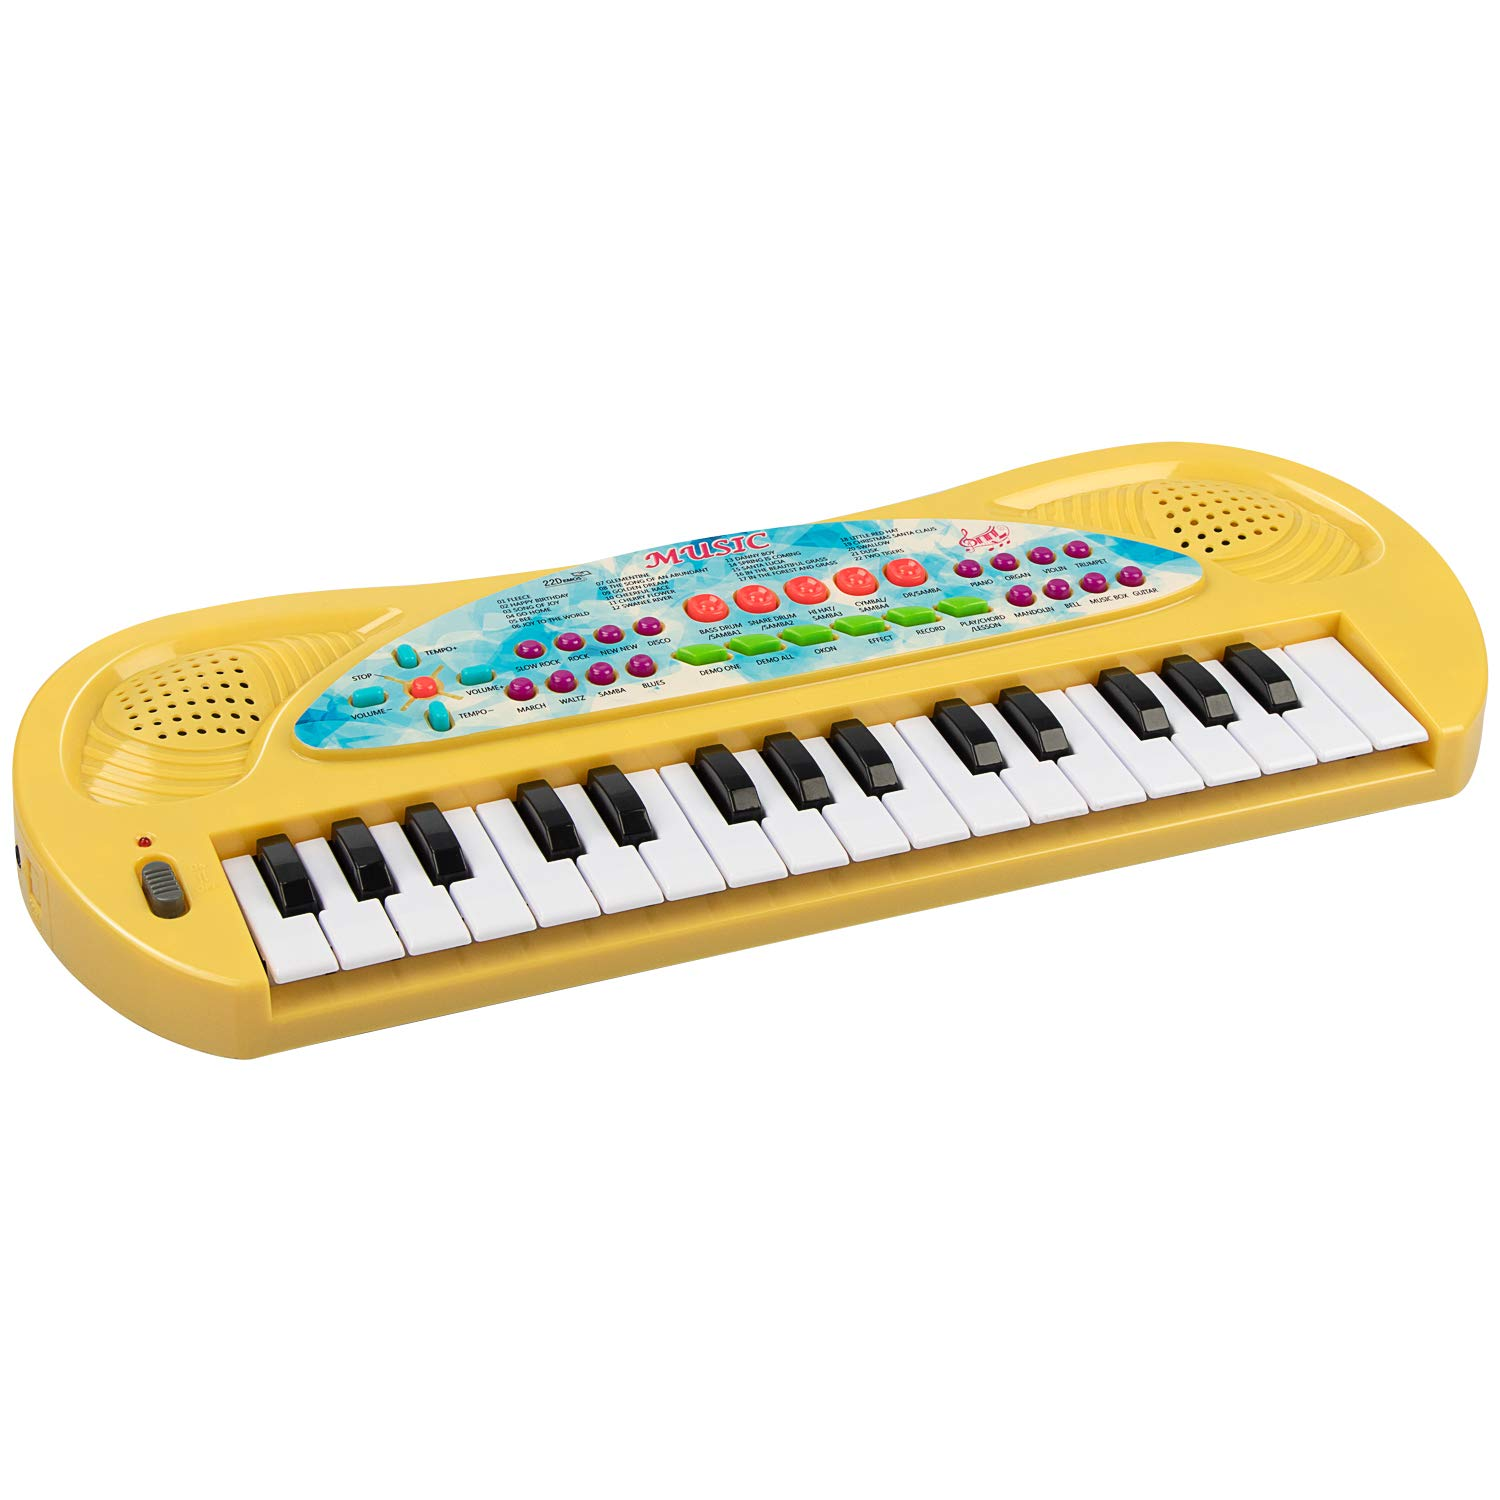 aPerfectLife Piano for Kids, 32 Keys Multifunction Portable Electronic Kids Keyboard Piano Musical Children Boys Girls Early Learning Educational Toy (Yellow) by aPerfectLife